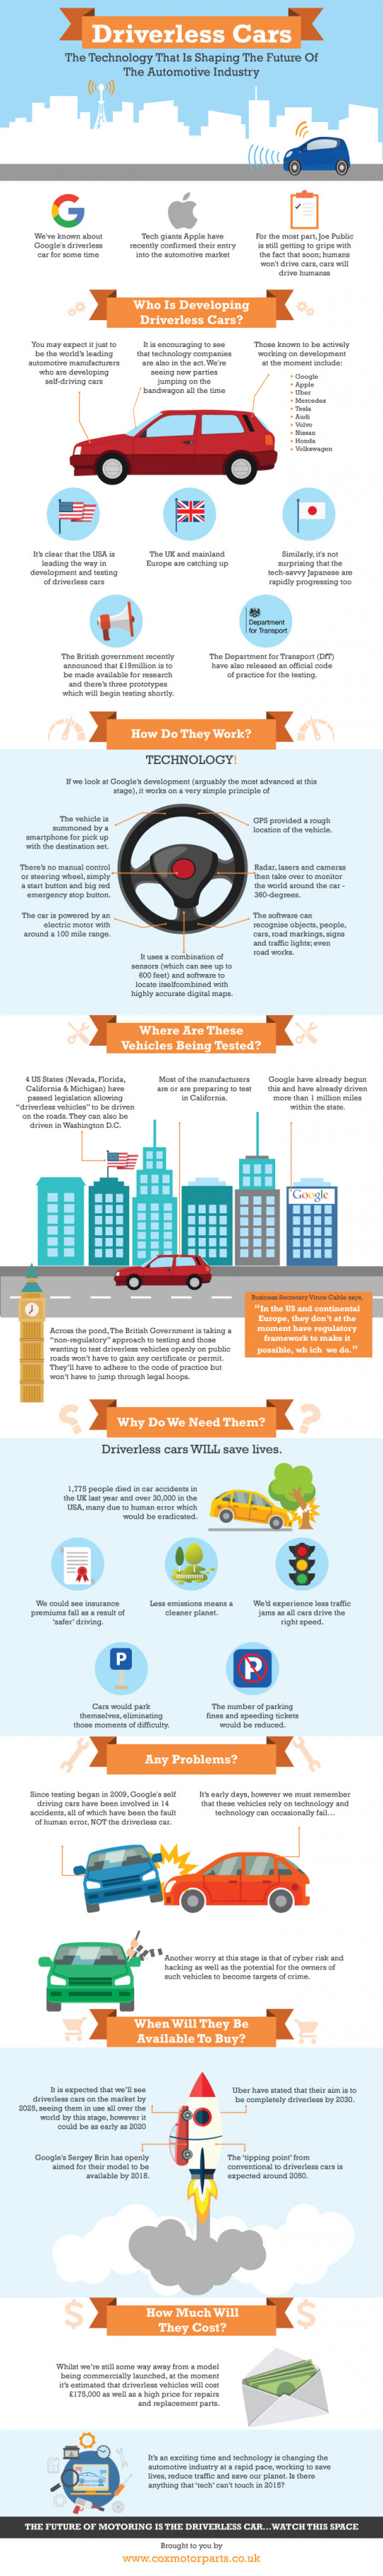 Driverless Cars - The Technology That Is Shaping The Automotive Industry